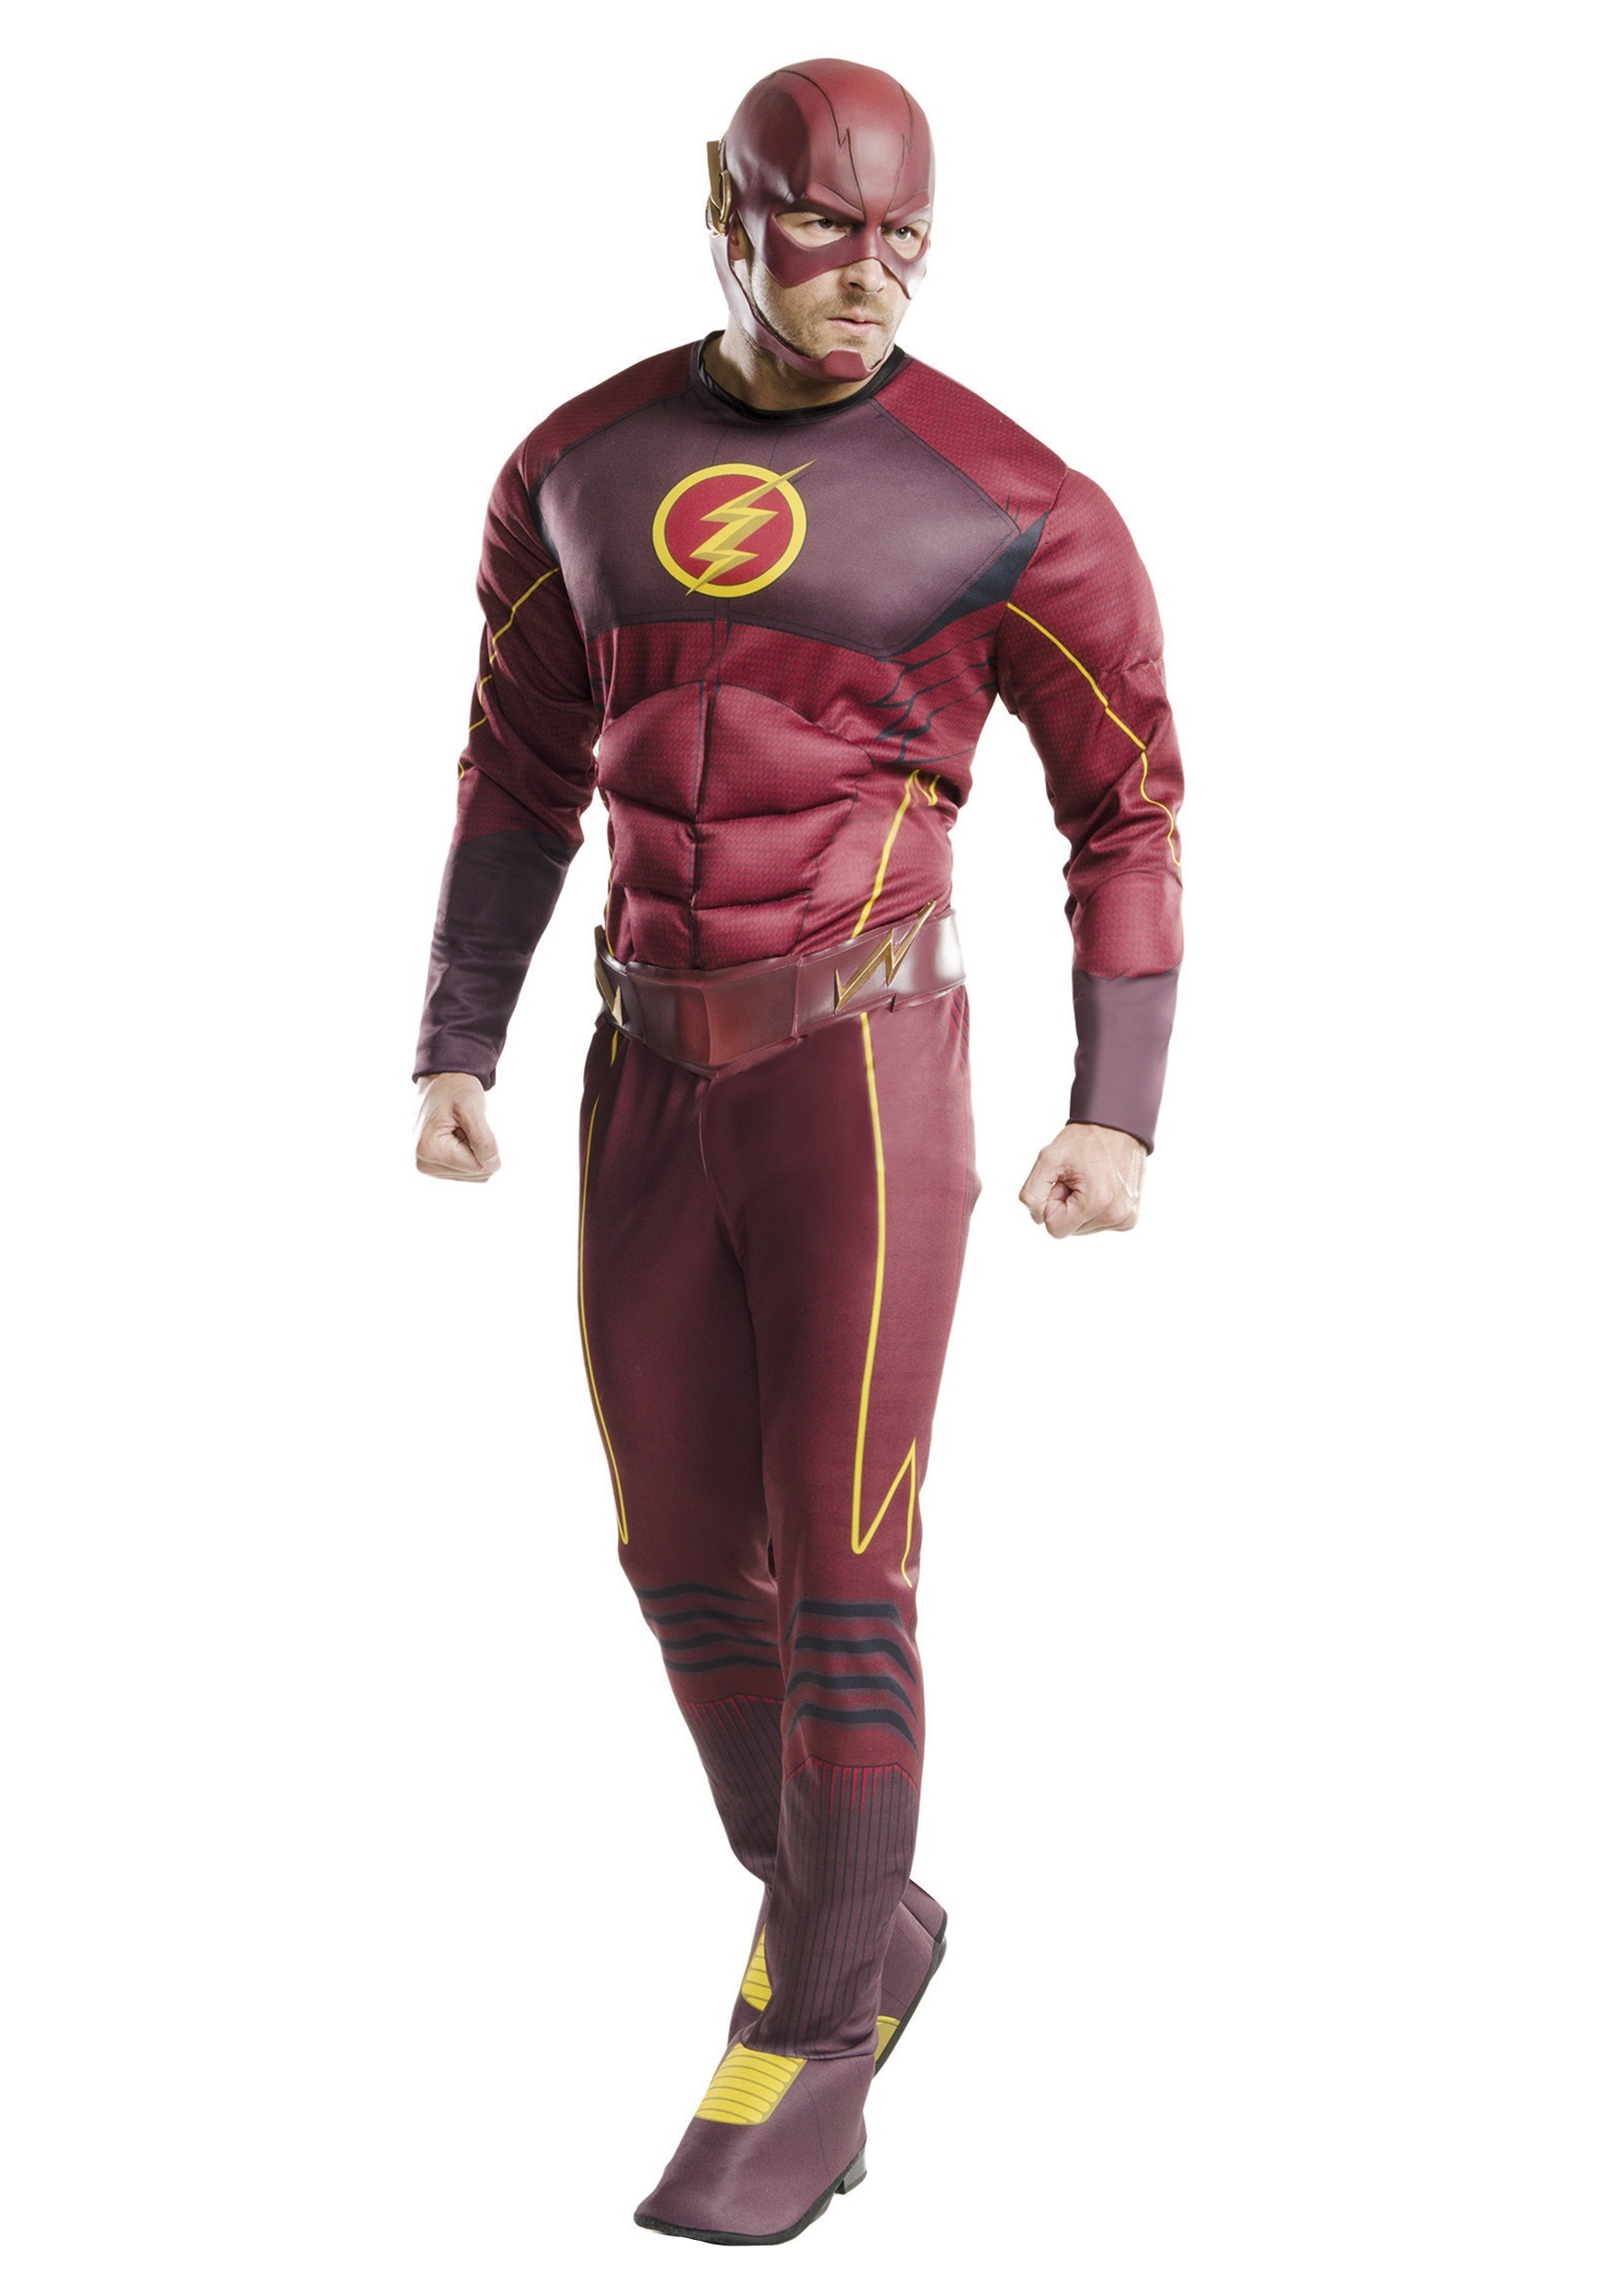 Adult Deluxe The Flash Costume  sc 1 st  Halloween Costumes : childrens flash costume  - Germanpascual.Com